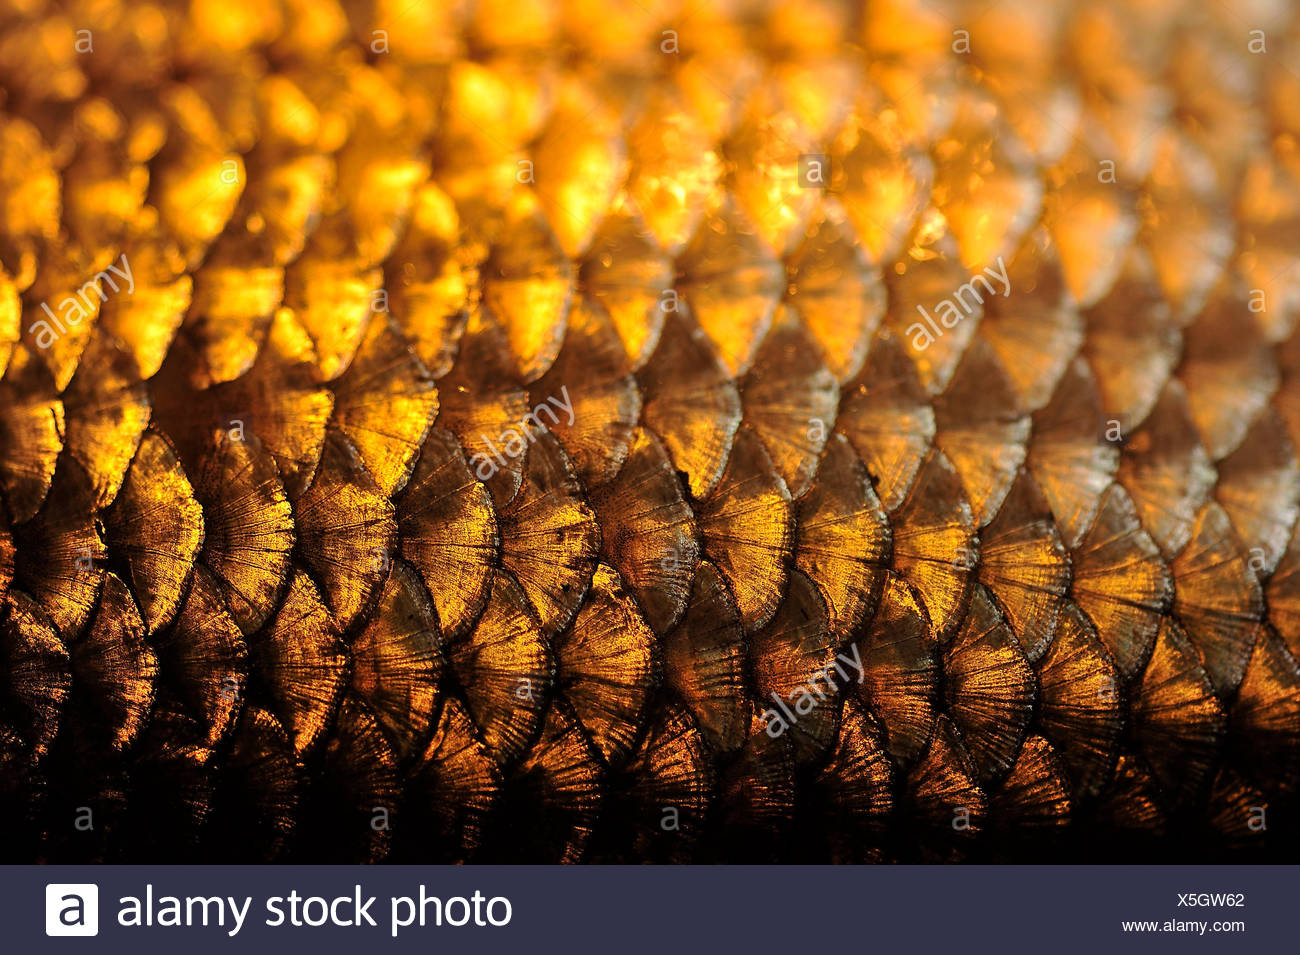 Of fish scales in the golden light takes a photo Stock Photo